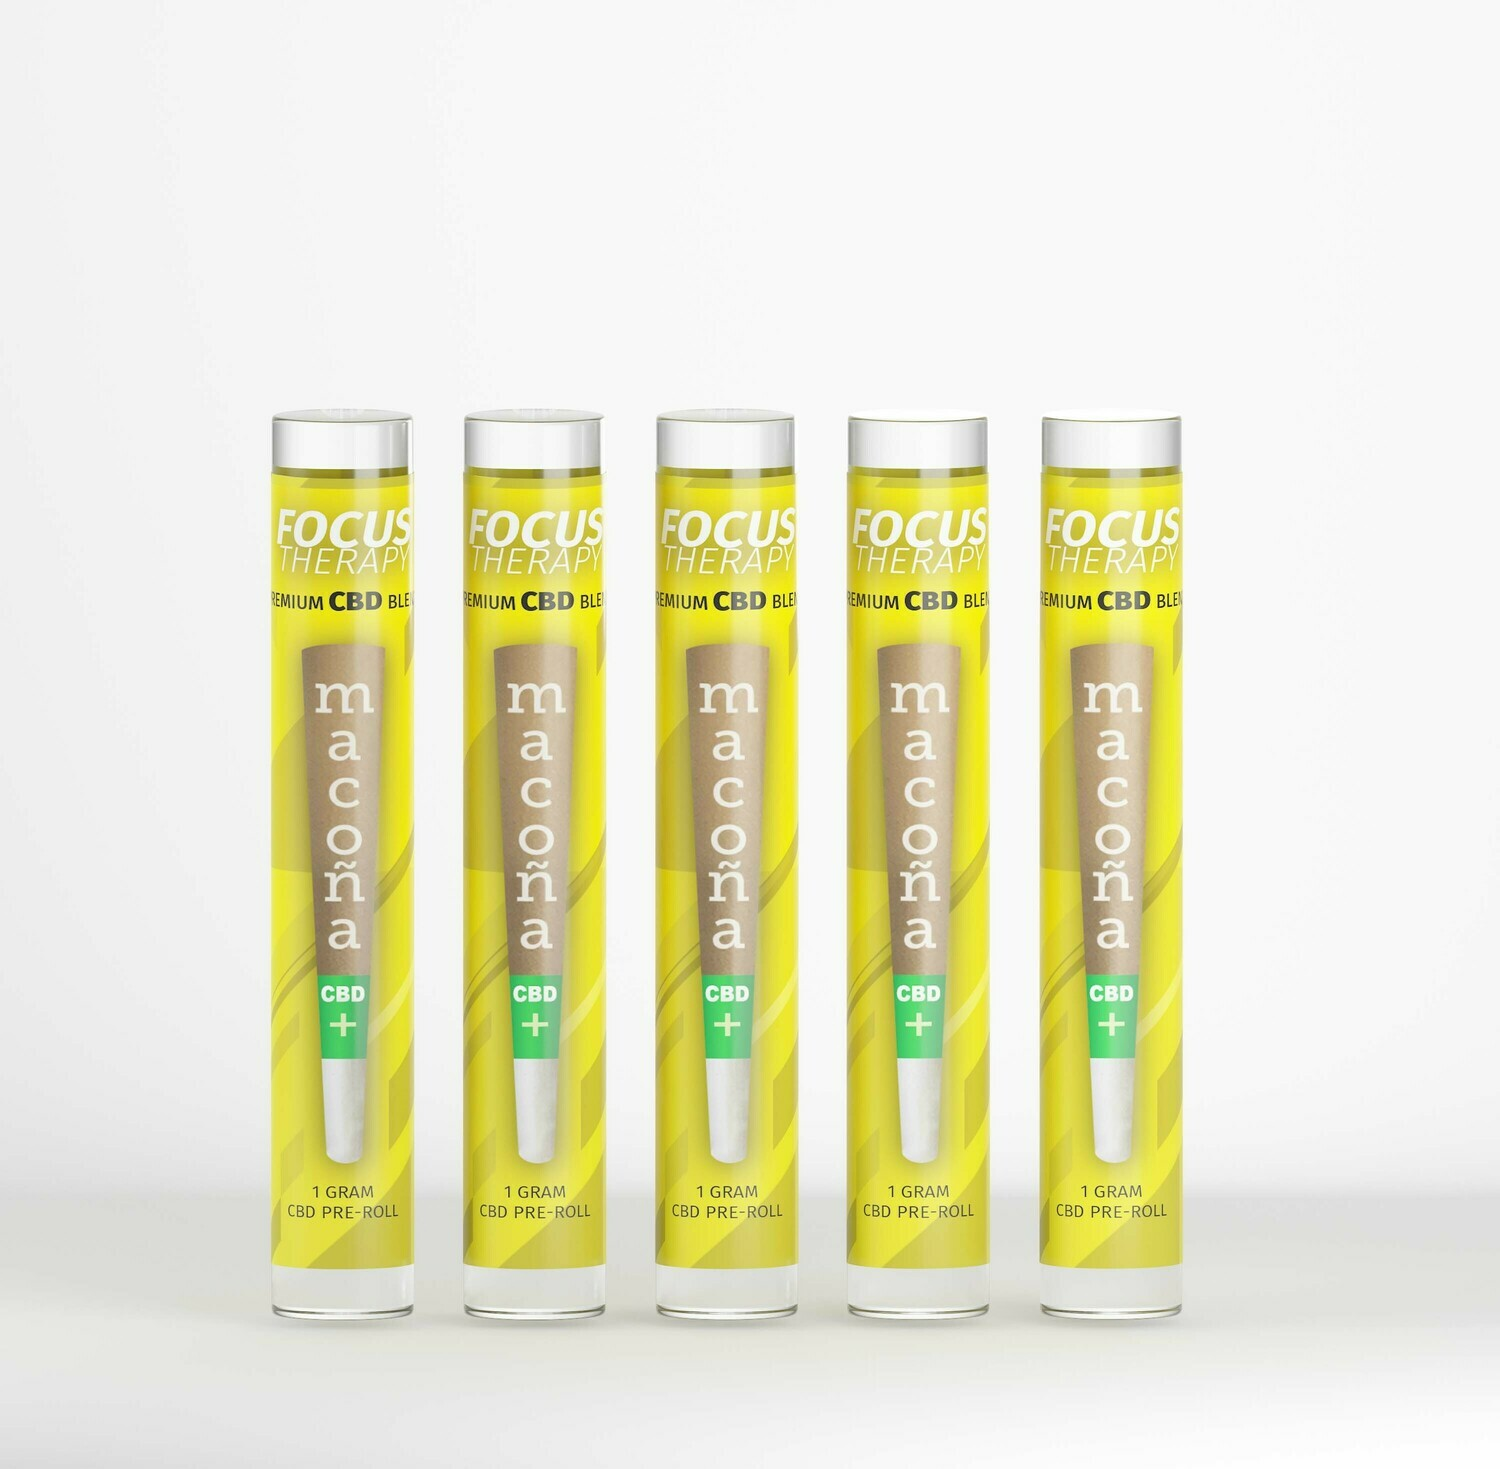 Focus THERAPY CBD Pre-Roll (5 Packs)